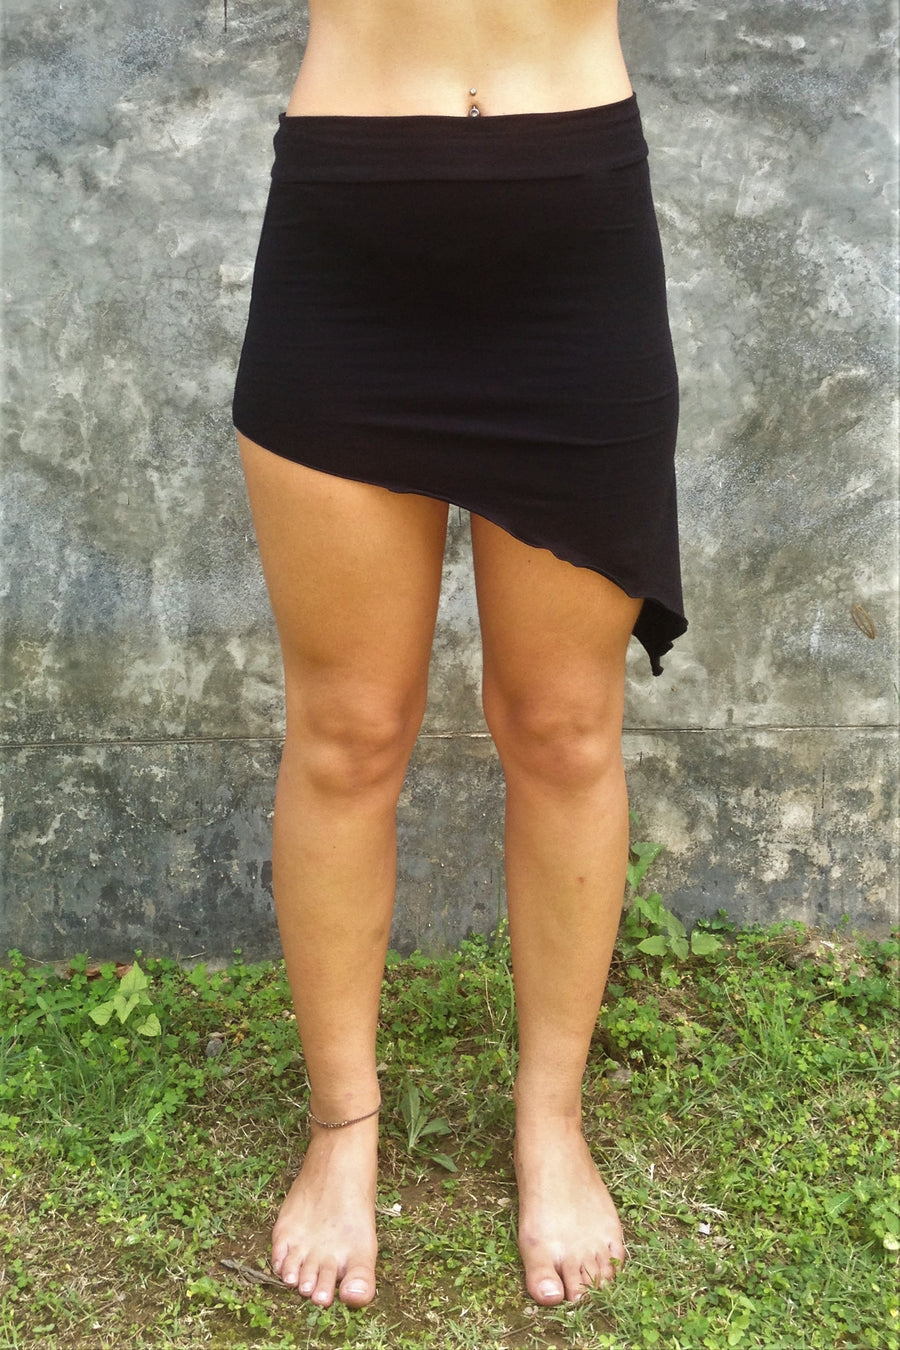 Front view of Festival Skirt by Lotus Tribe Clothing is a stretchy asymmetrical, easy to wear comfortable mini skirt. Looks great over bare legs or can be layered with leggings in cool er weather. Fold the top over or wear high waisted, custom form fits to your body shape. Soft and stretchy 90% cotton knit with 10% spandex.